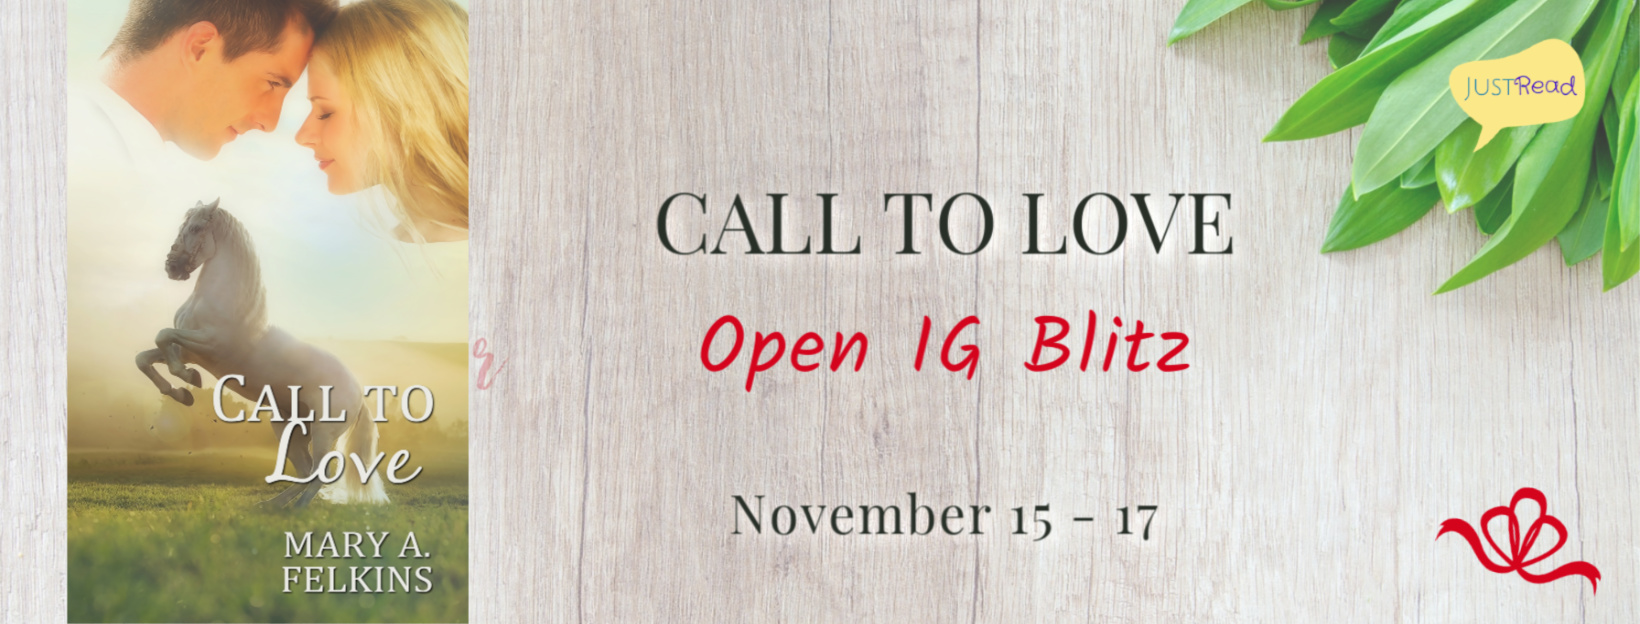 Welcome to the Call to Love IG Blitz & Giveaway!